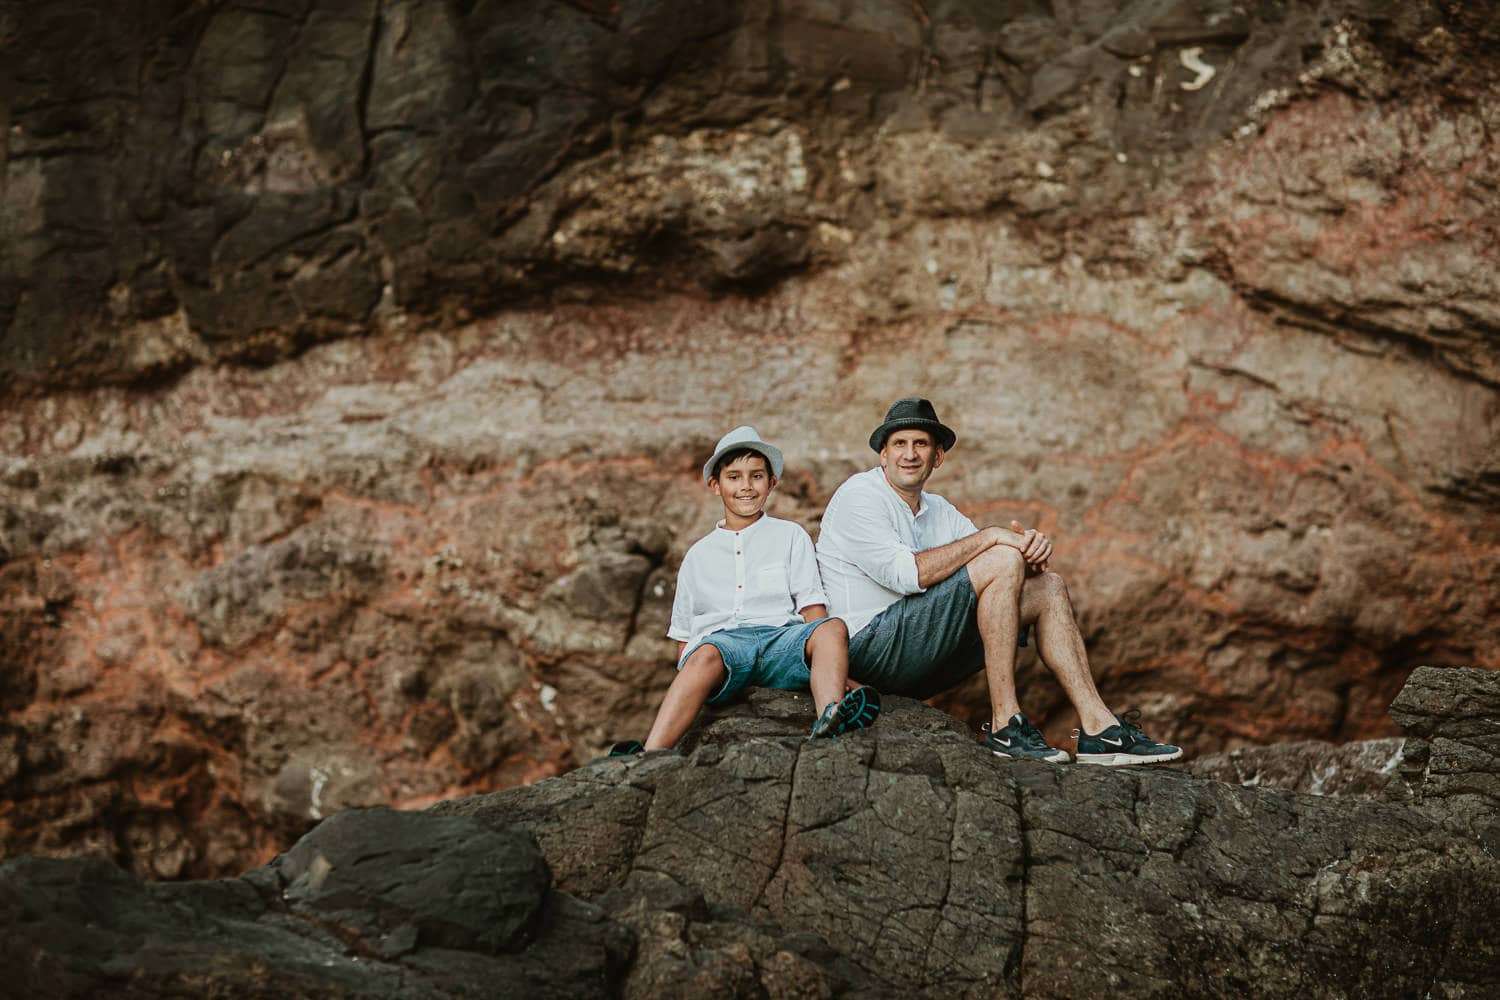 Dad and son sitting together on rocks in a family photoshoot session - Outdoor location photos